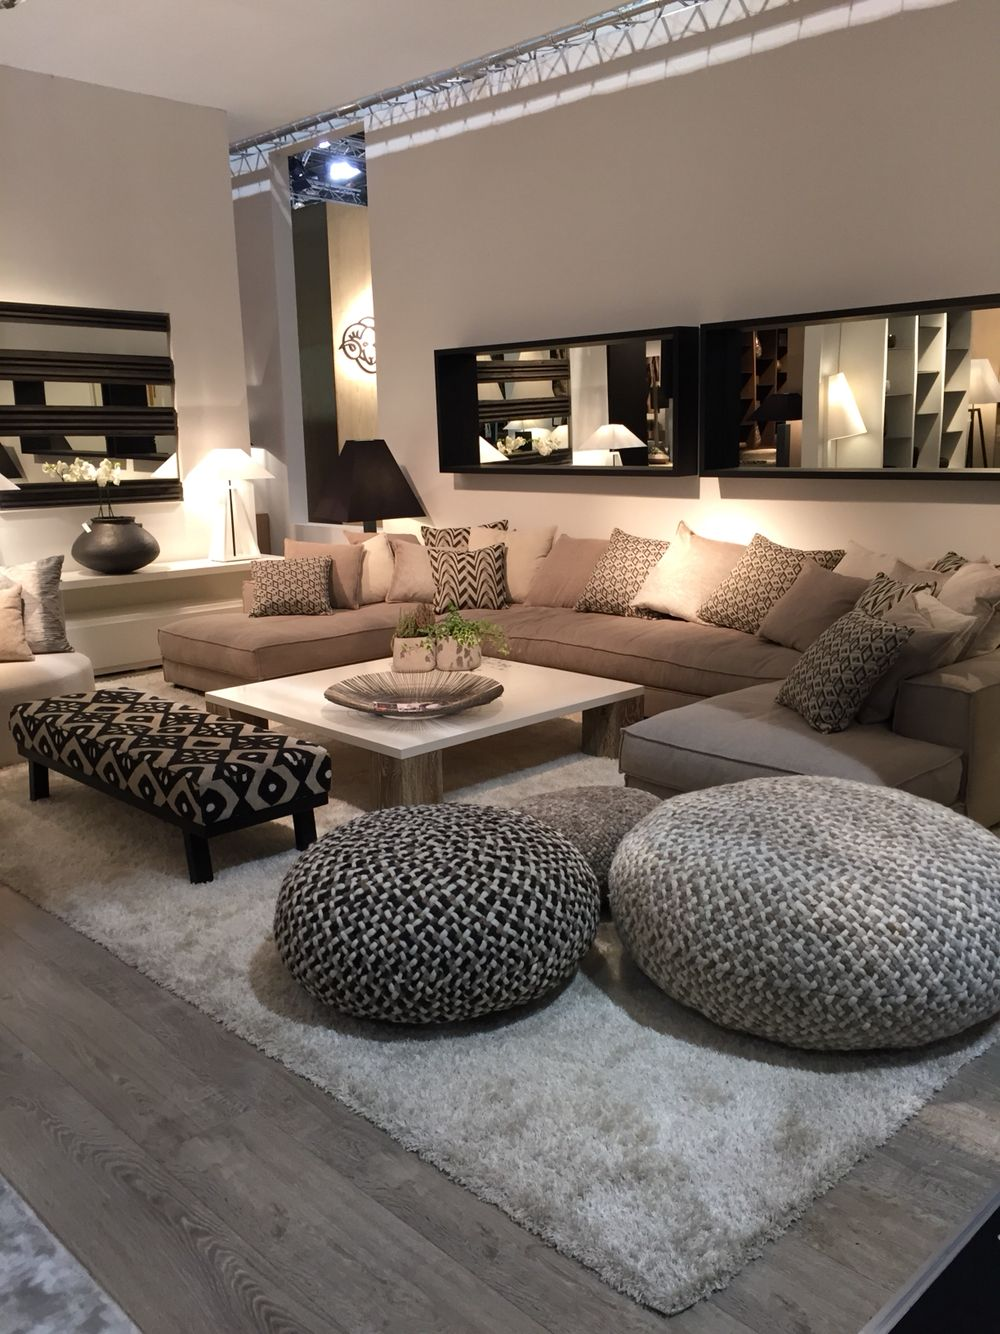 MaisonObjet 2015 by #MaisonManon. | Appartement en 2018 | Salon ...